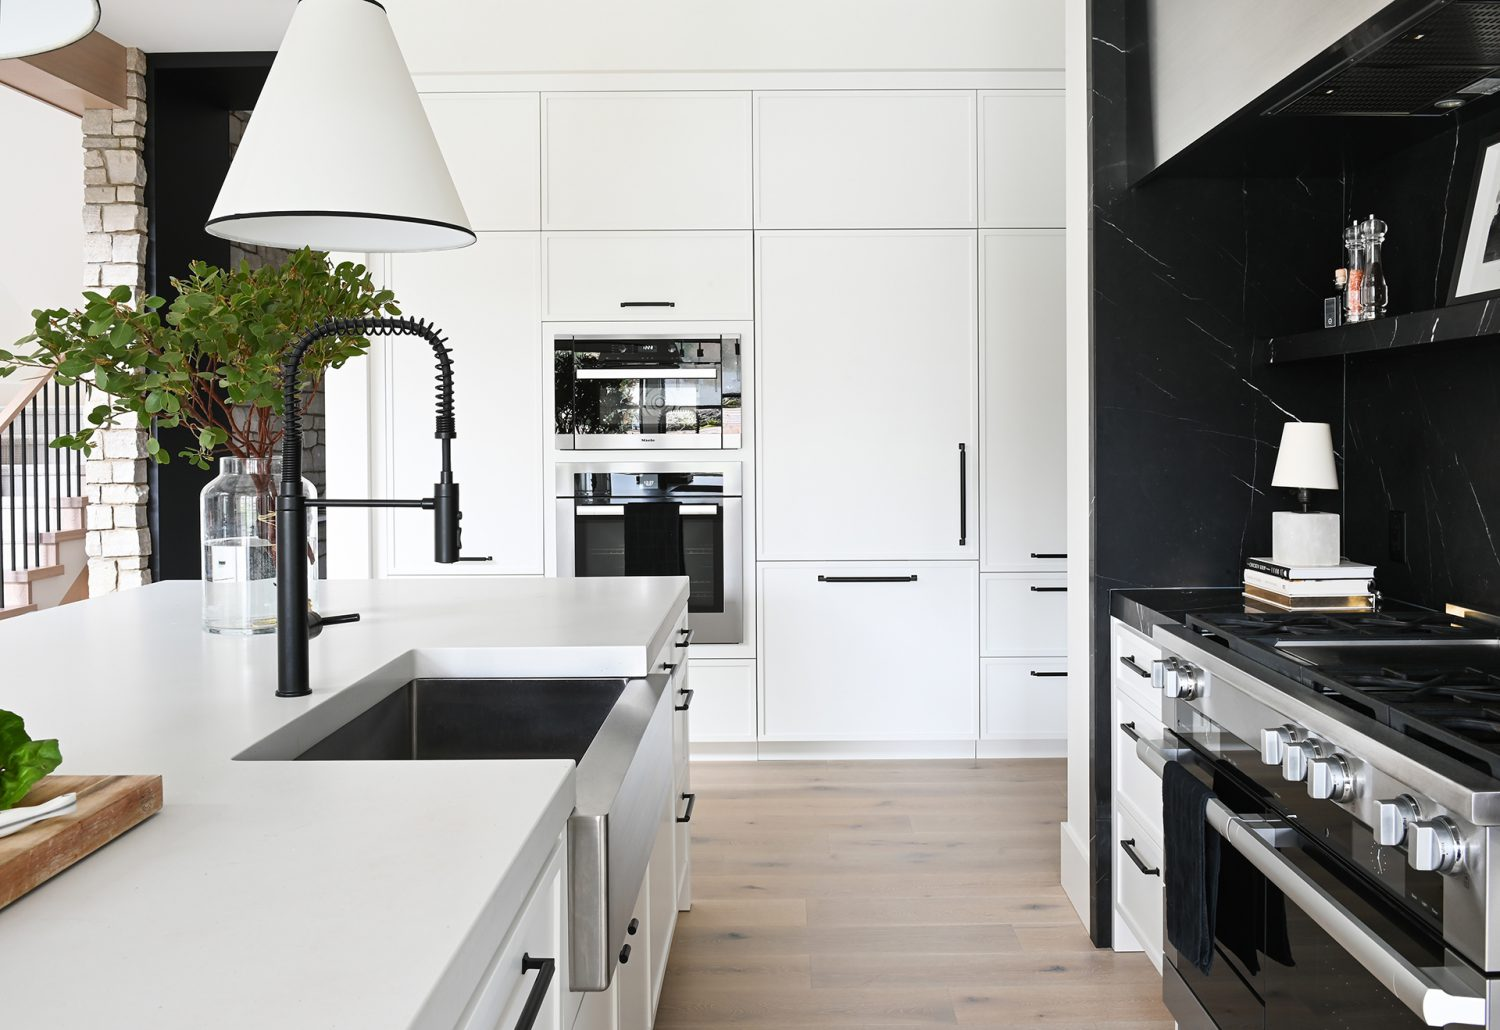 Ferme Moderne interior kitchen built by Midland Premium Properties in Vancouver, BC